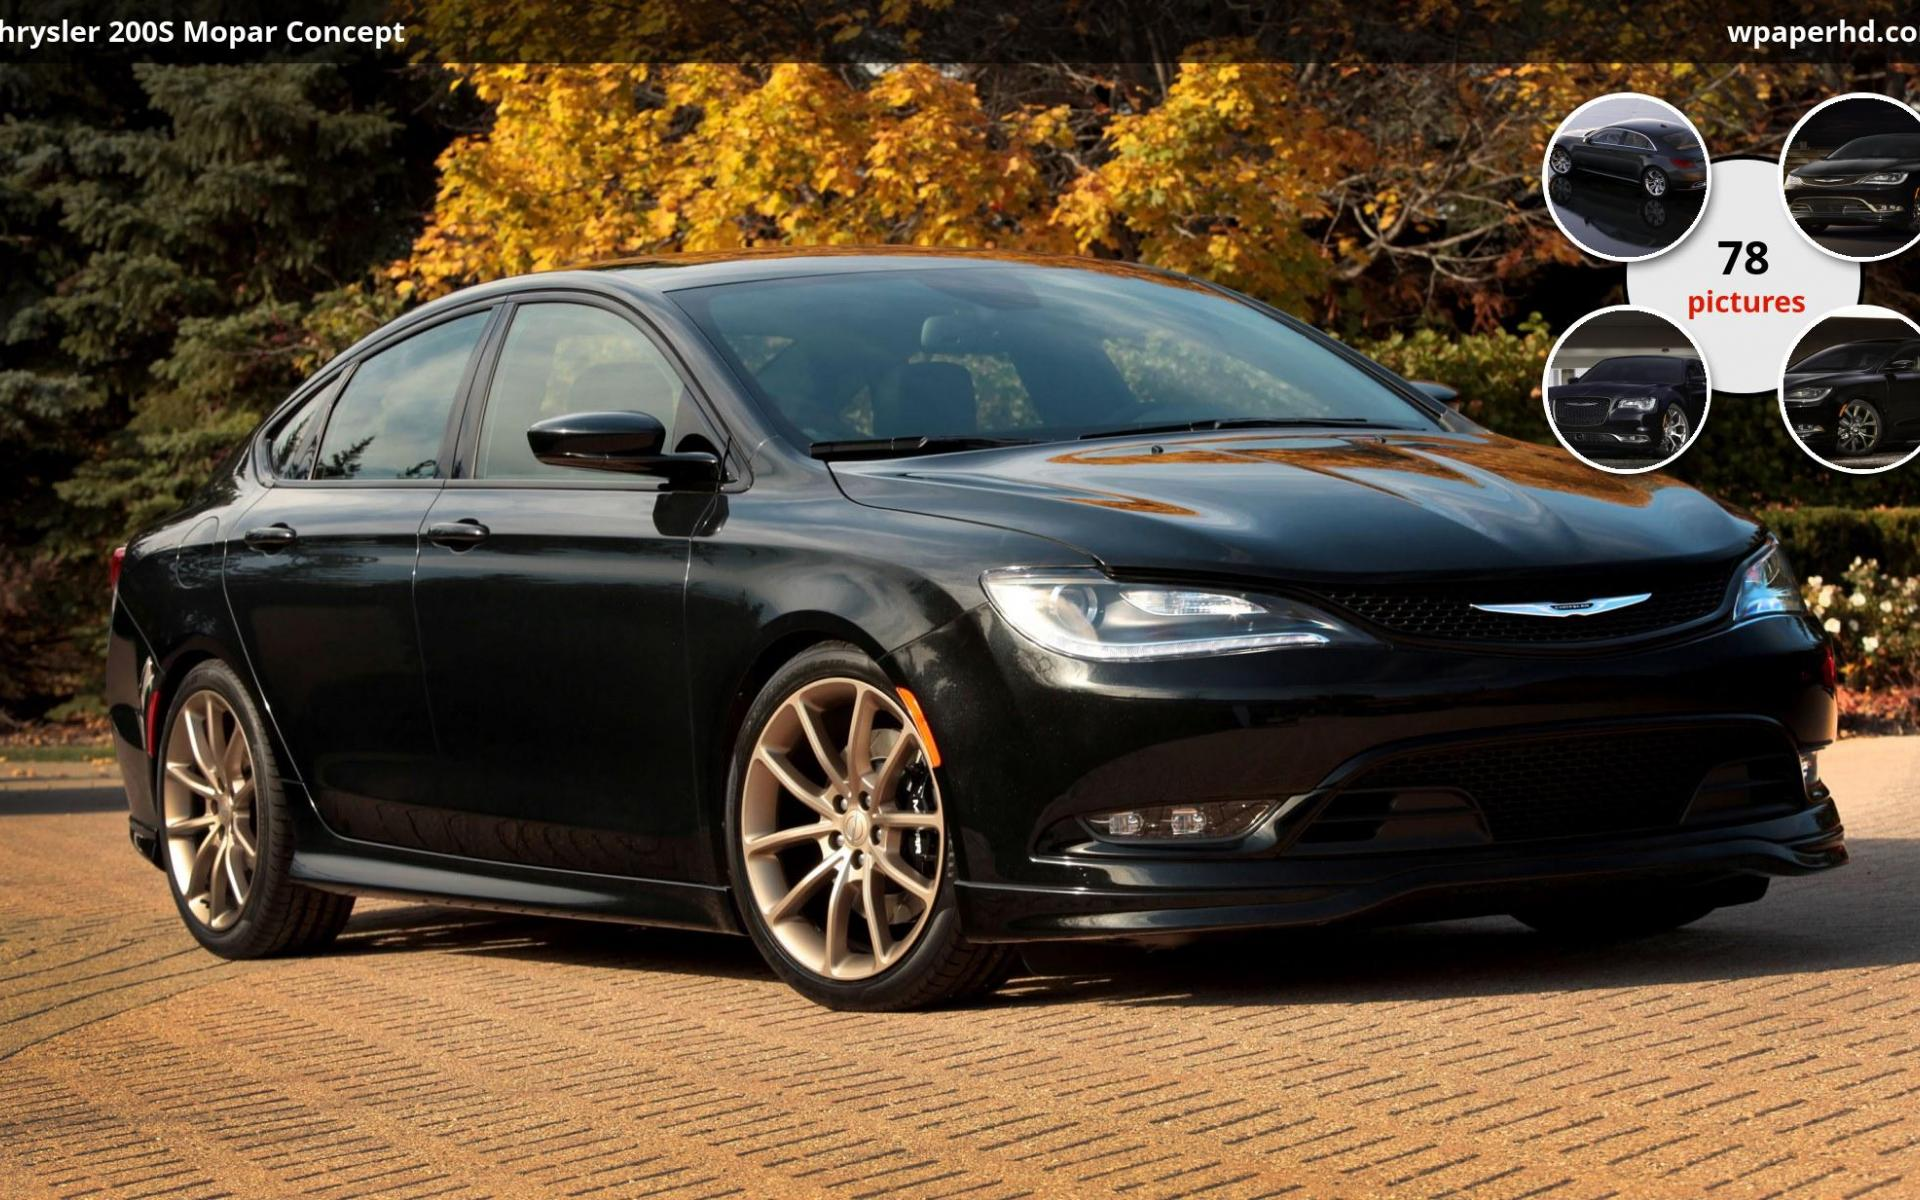 1920x1200 - Chrysler 200 Wallpapers 34